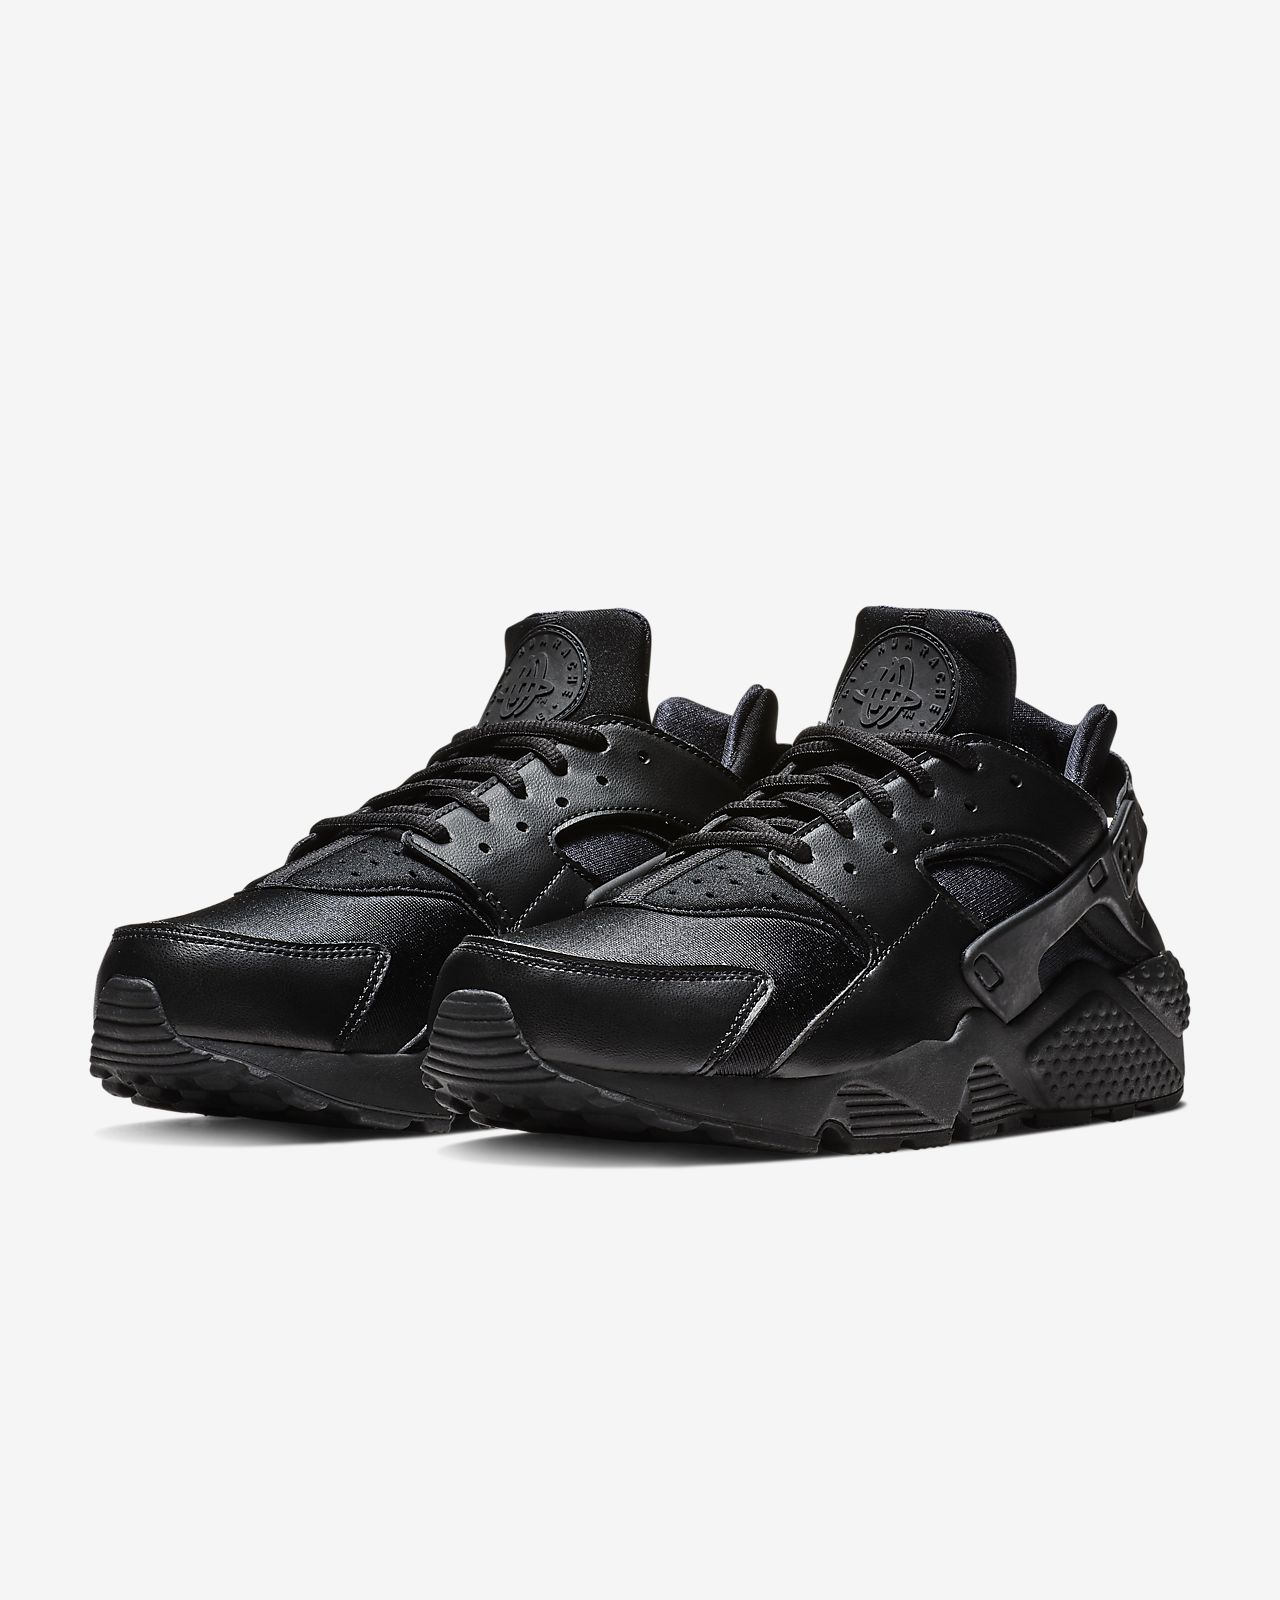 Low Resolution Nike Air Huarache Women s Shoe Nike Air Huarache Women s Shoe fcfb52556